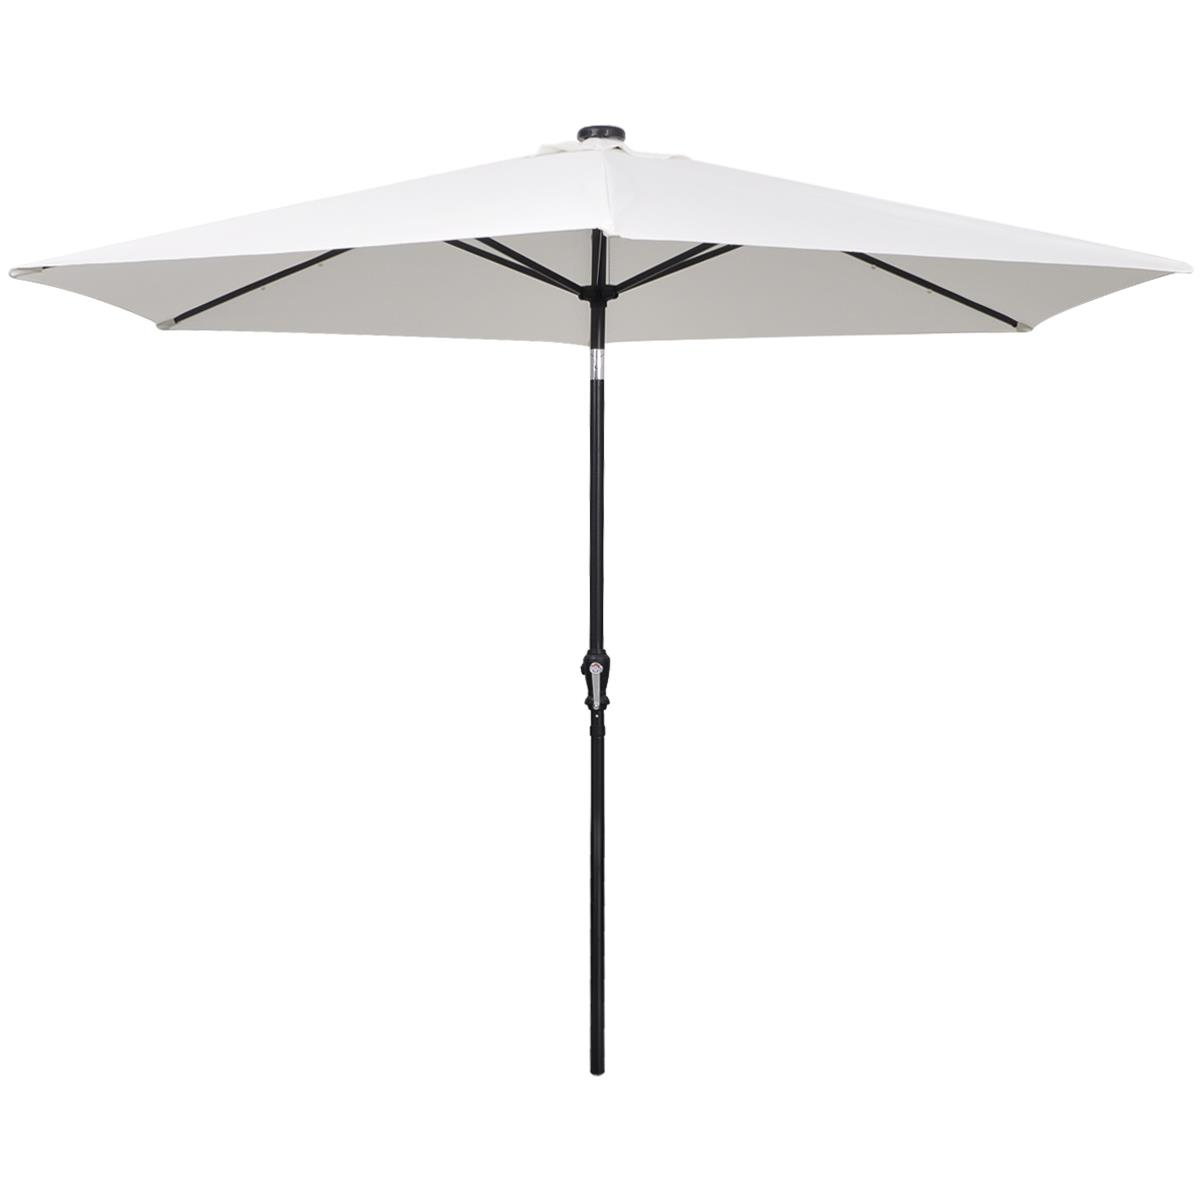 Eclairage Led Parasol Parasol Lumineux à Led Solaires Inclinable 300 Cm